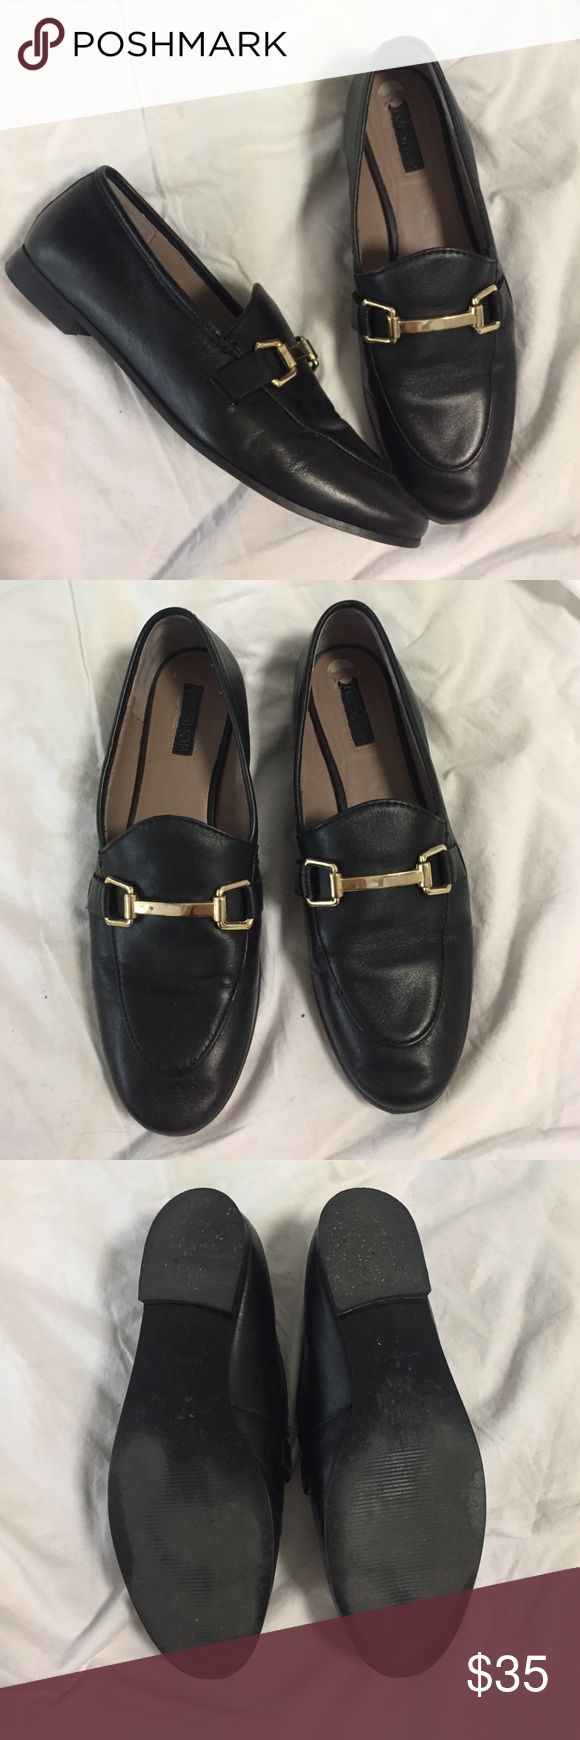 Topshop Bit Loafer Black Gold Hardware 7.5/ 38 Topshop Bit Loafer. Black color. Size 38. I am a 7.5 and it fits me. Purchased from Nordstrom. Leather with gold toned hardware. Let me know if you have any questions. Topshop Shoes Flats & Loafers